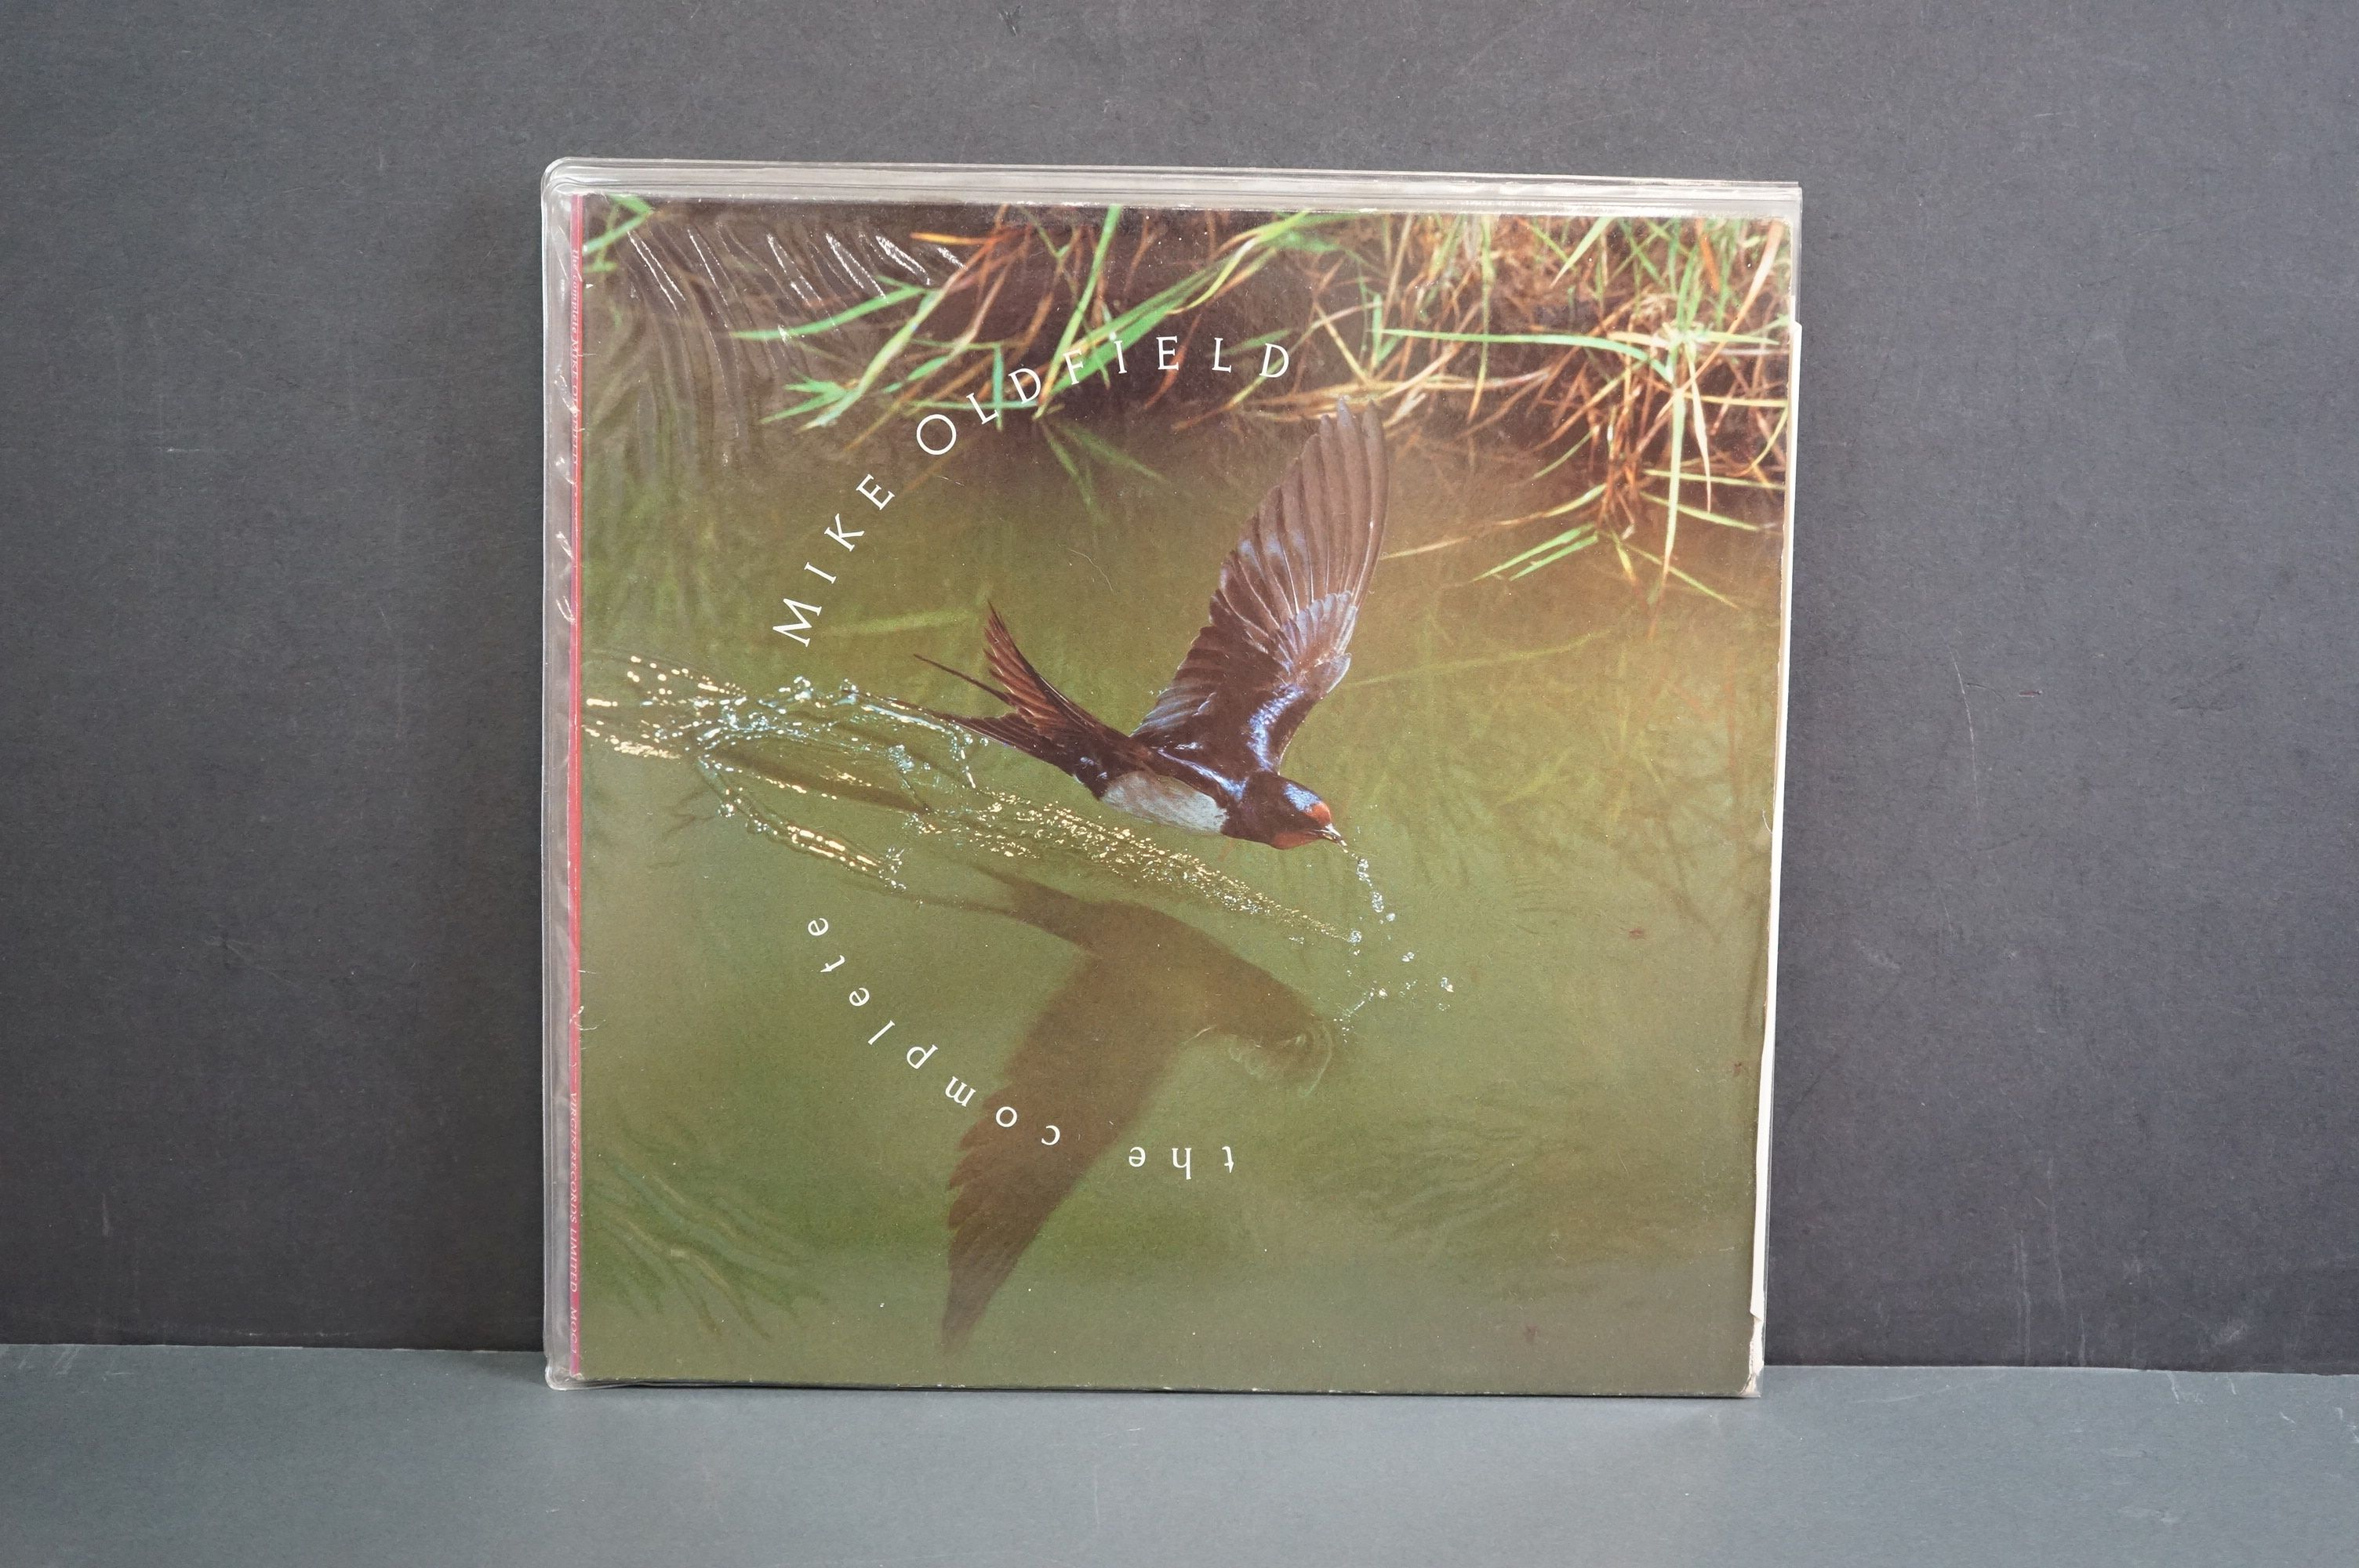 Vinyl - 14 Mike Oldfield LPs to include Tubular Bells, Five Miles Out, Best Of, Discovery etc, - Image 11 of 15